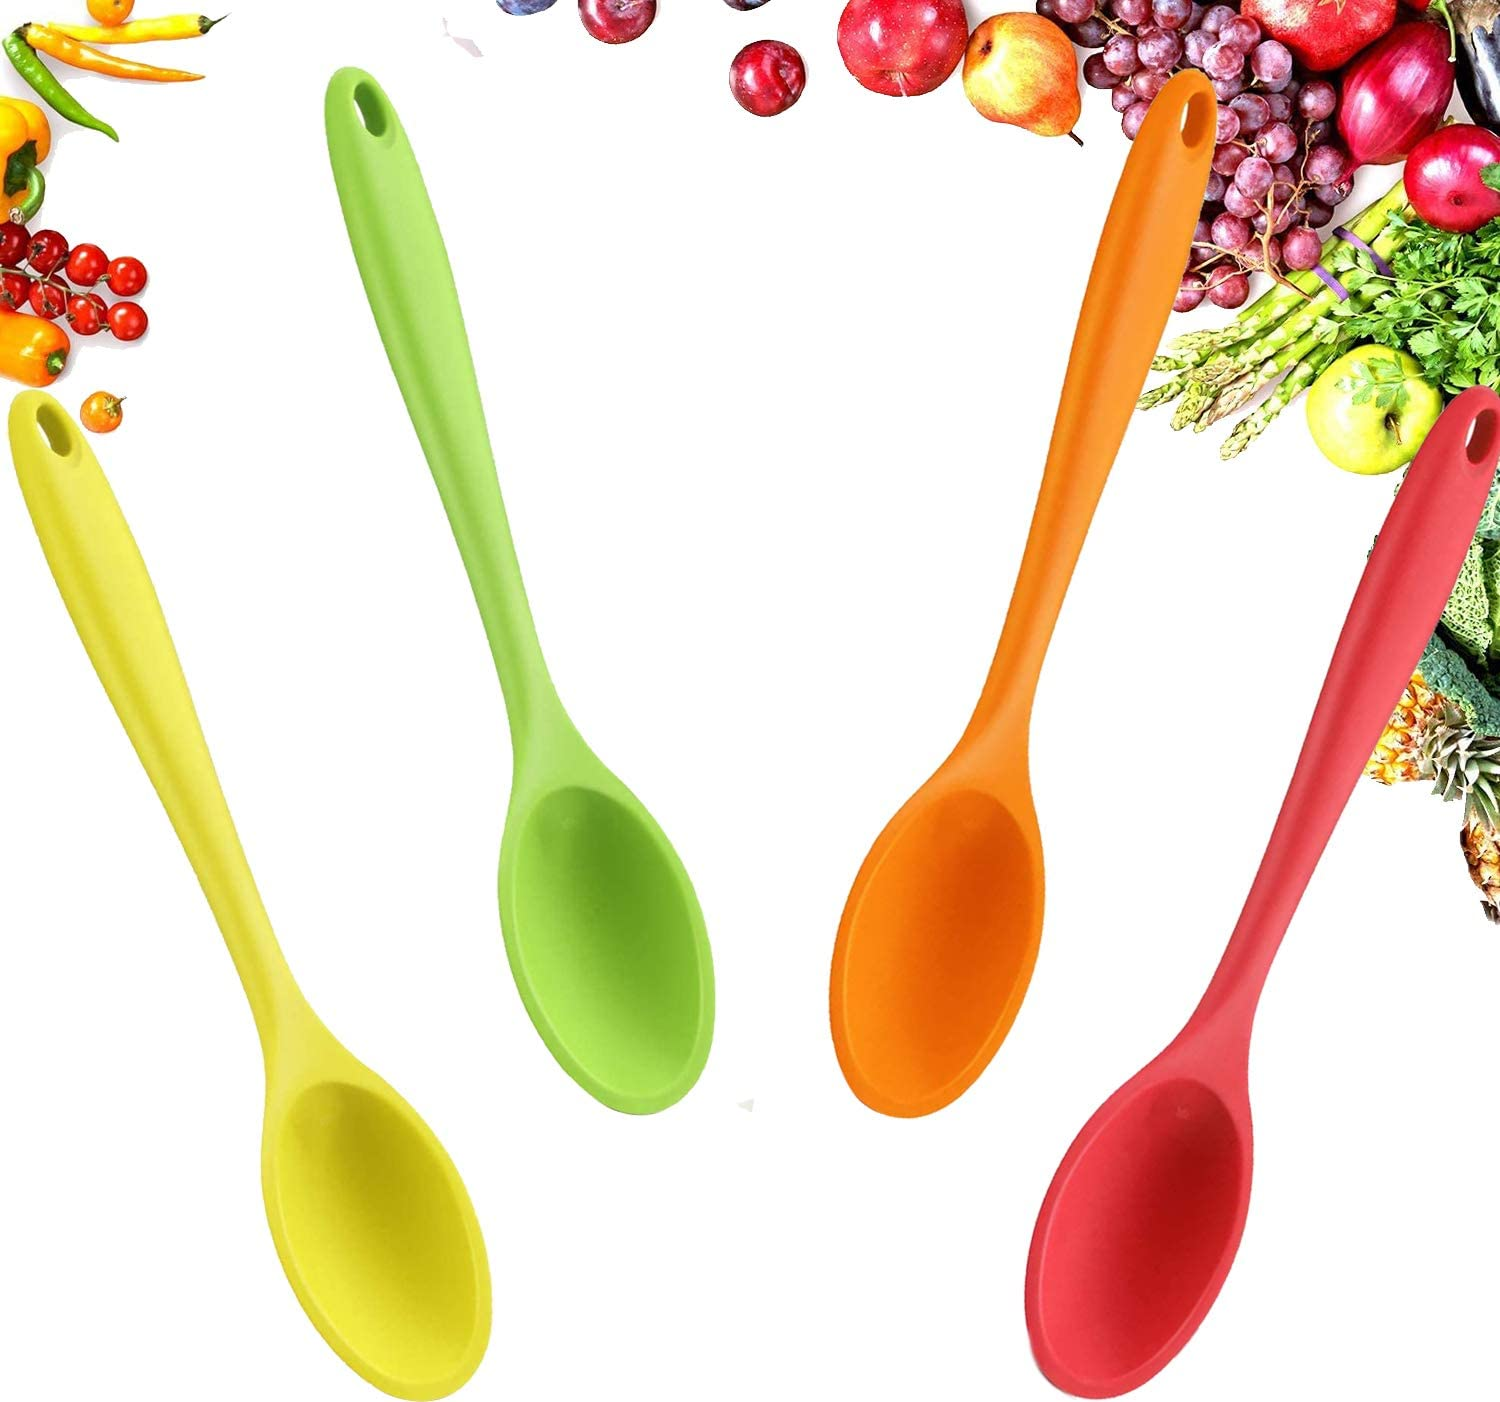 Silicone Mixing Cooking Spoons, Kitchen Nonstick High Heat Resistant BPA Free & Food Grade, Multicolored Silicone Stirring, Large Spoon Tools for Kitchen Mixing, Baking, Serving and Stirring (4 Pcs)